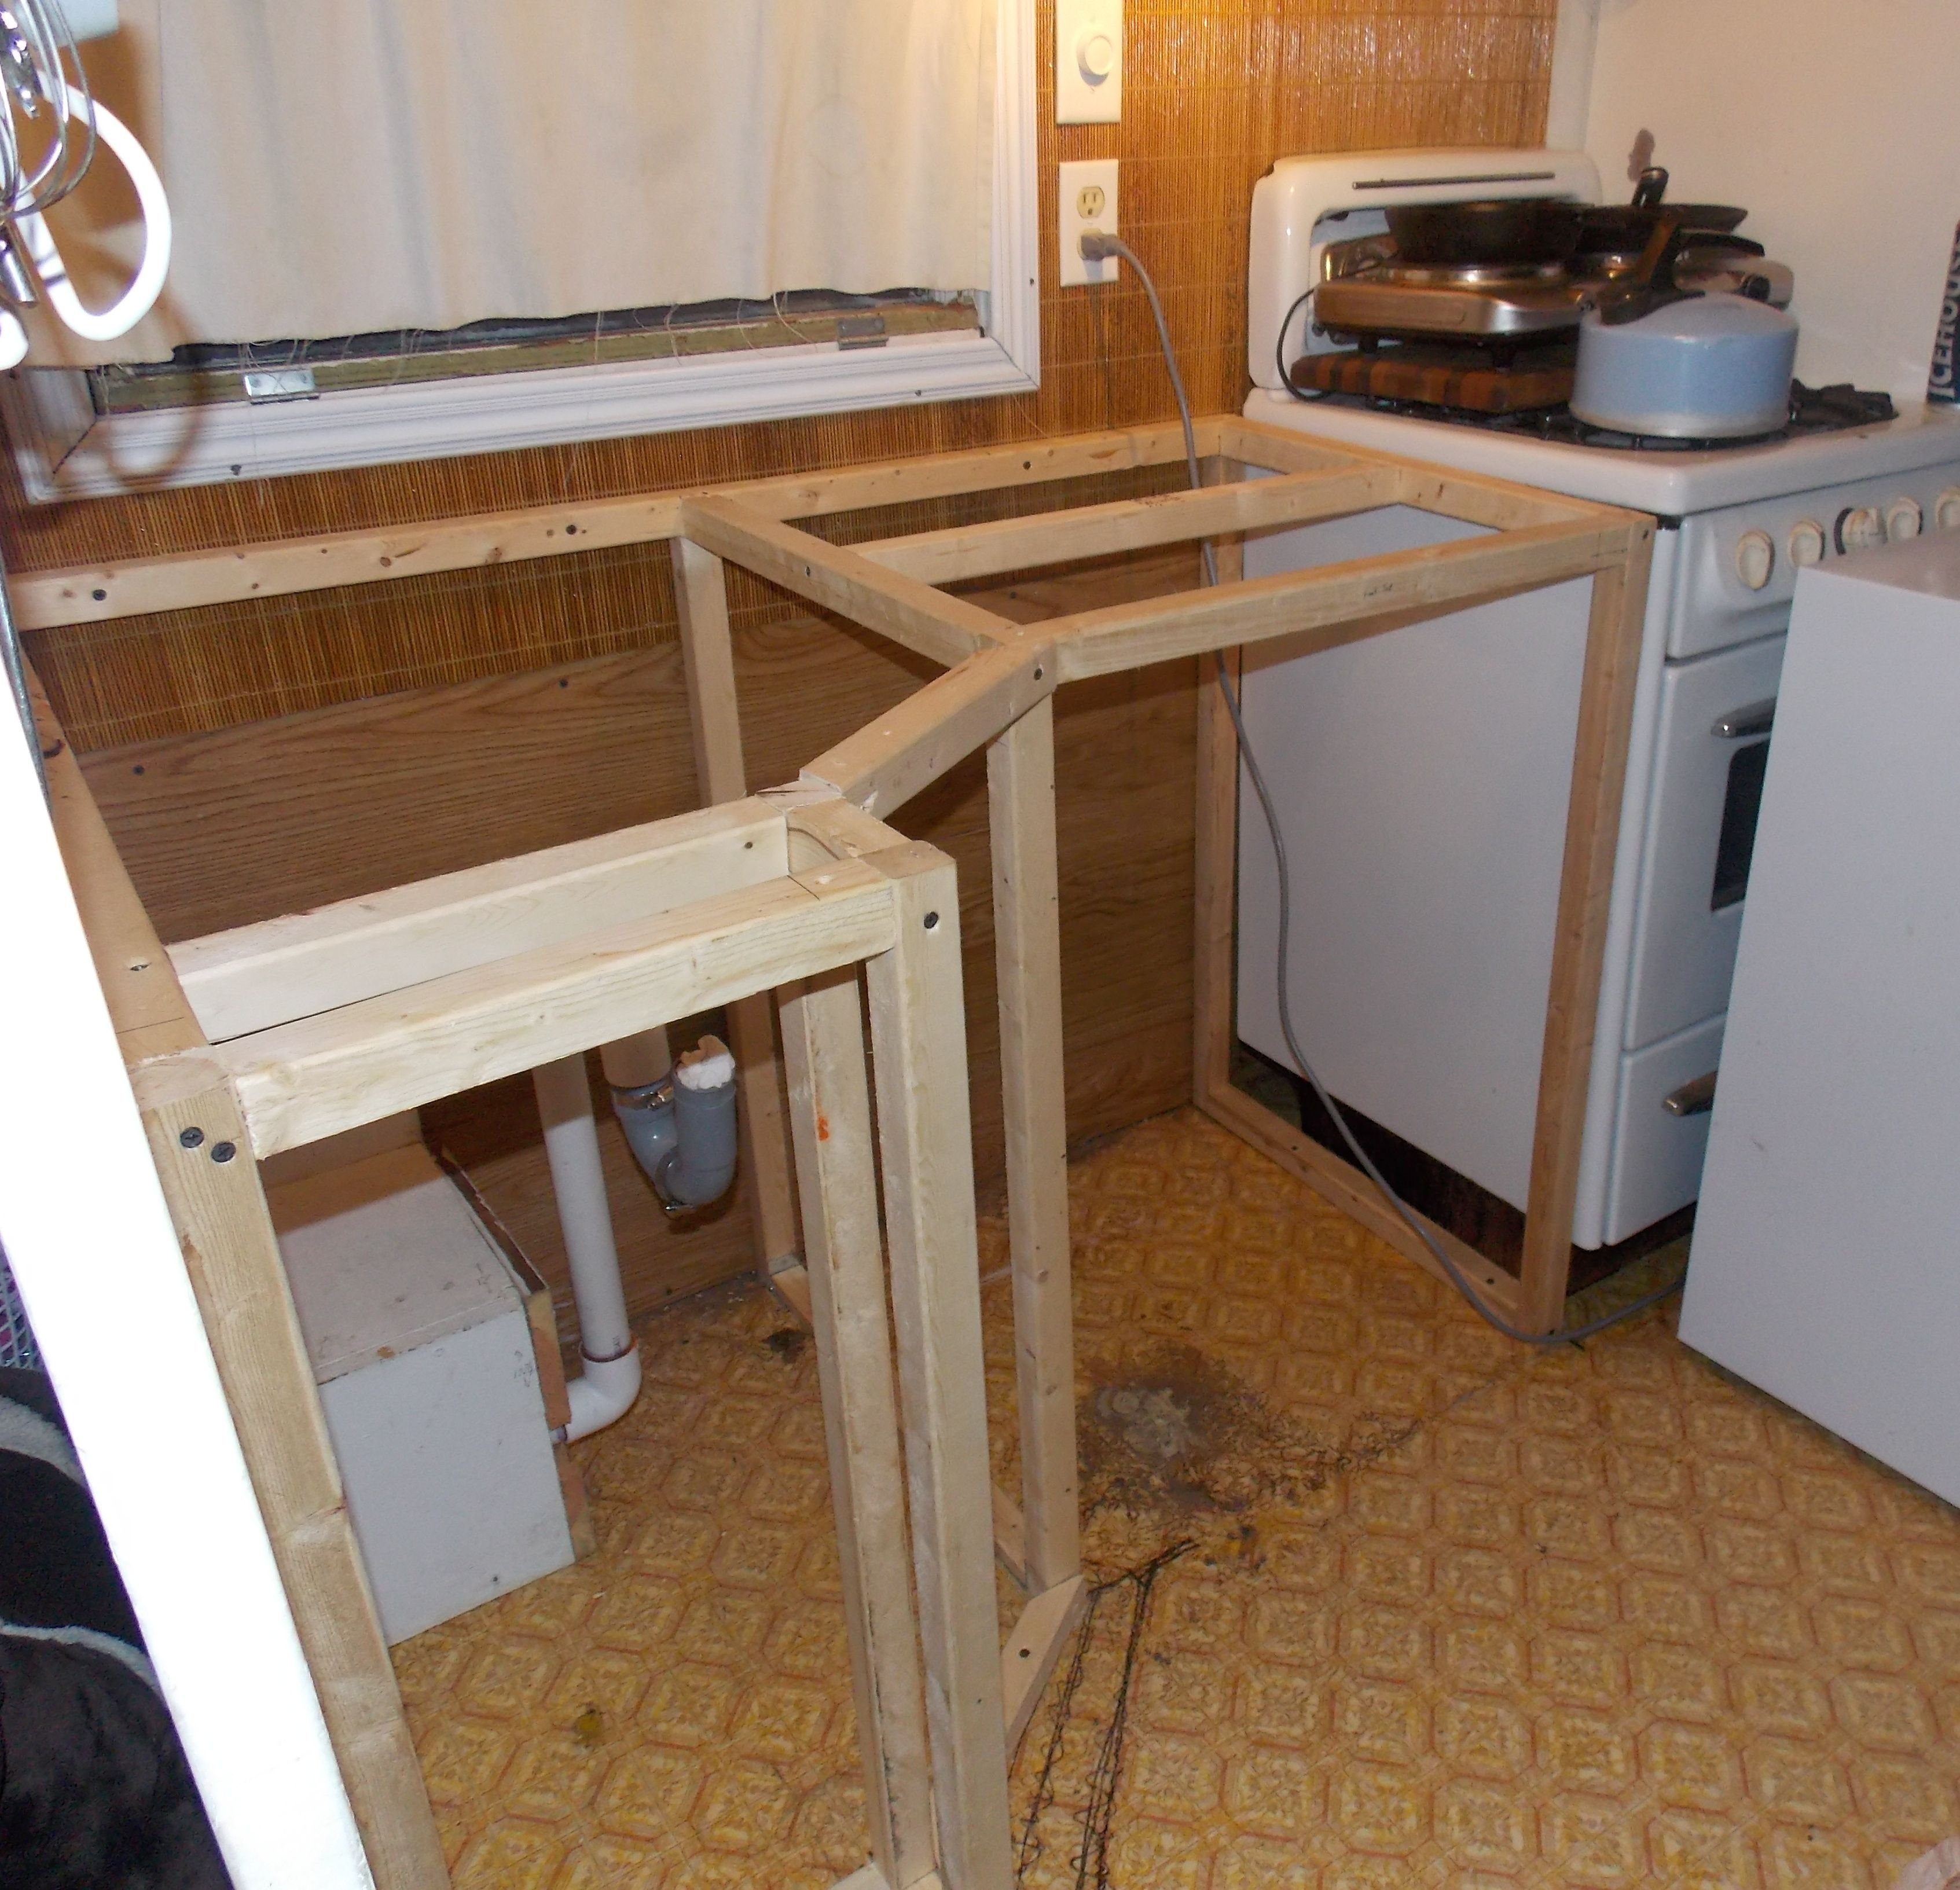 How Much To Redo Kitchen Cabinets: Travel Trailer Kitchen Remodel - Google Search